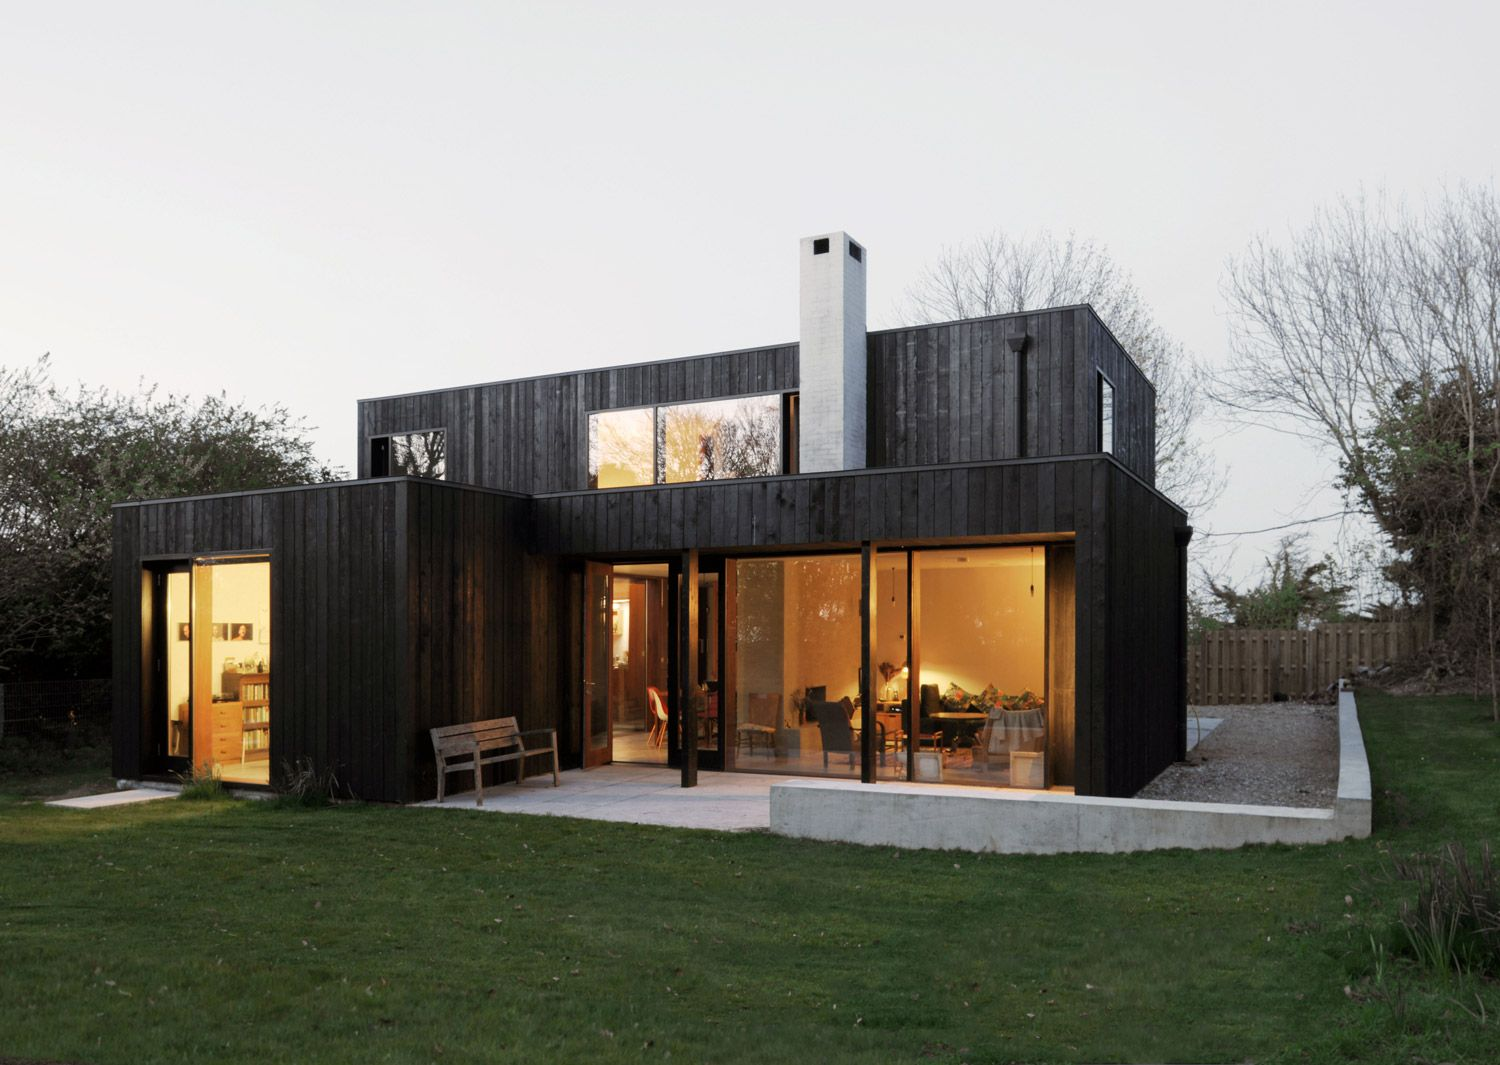 Dow jones architects project the sett einfamilienhaus efh